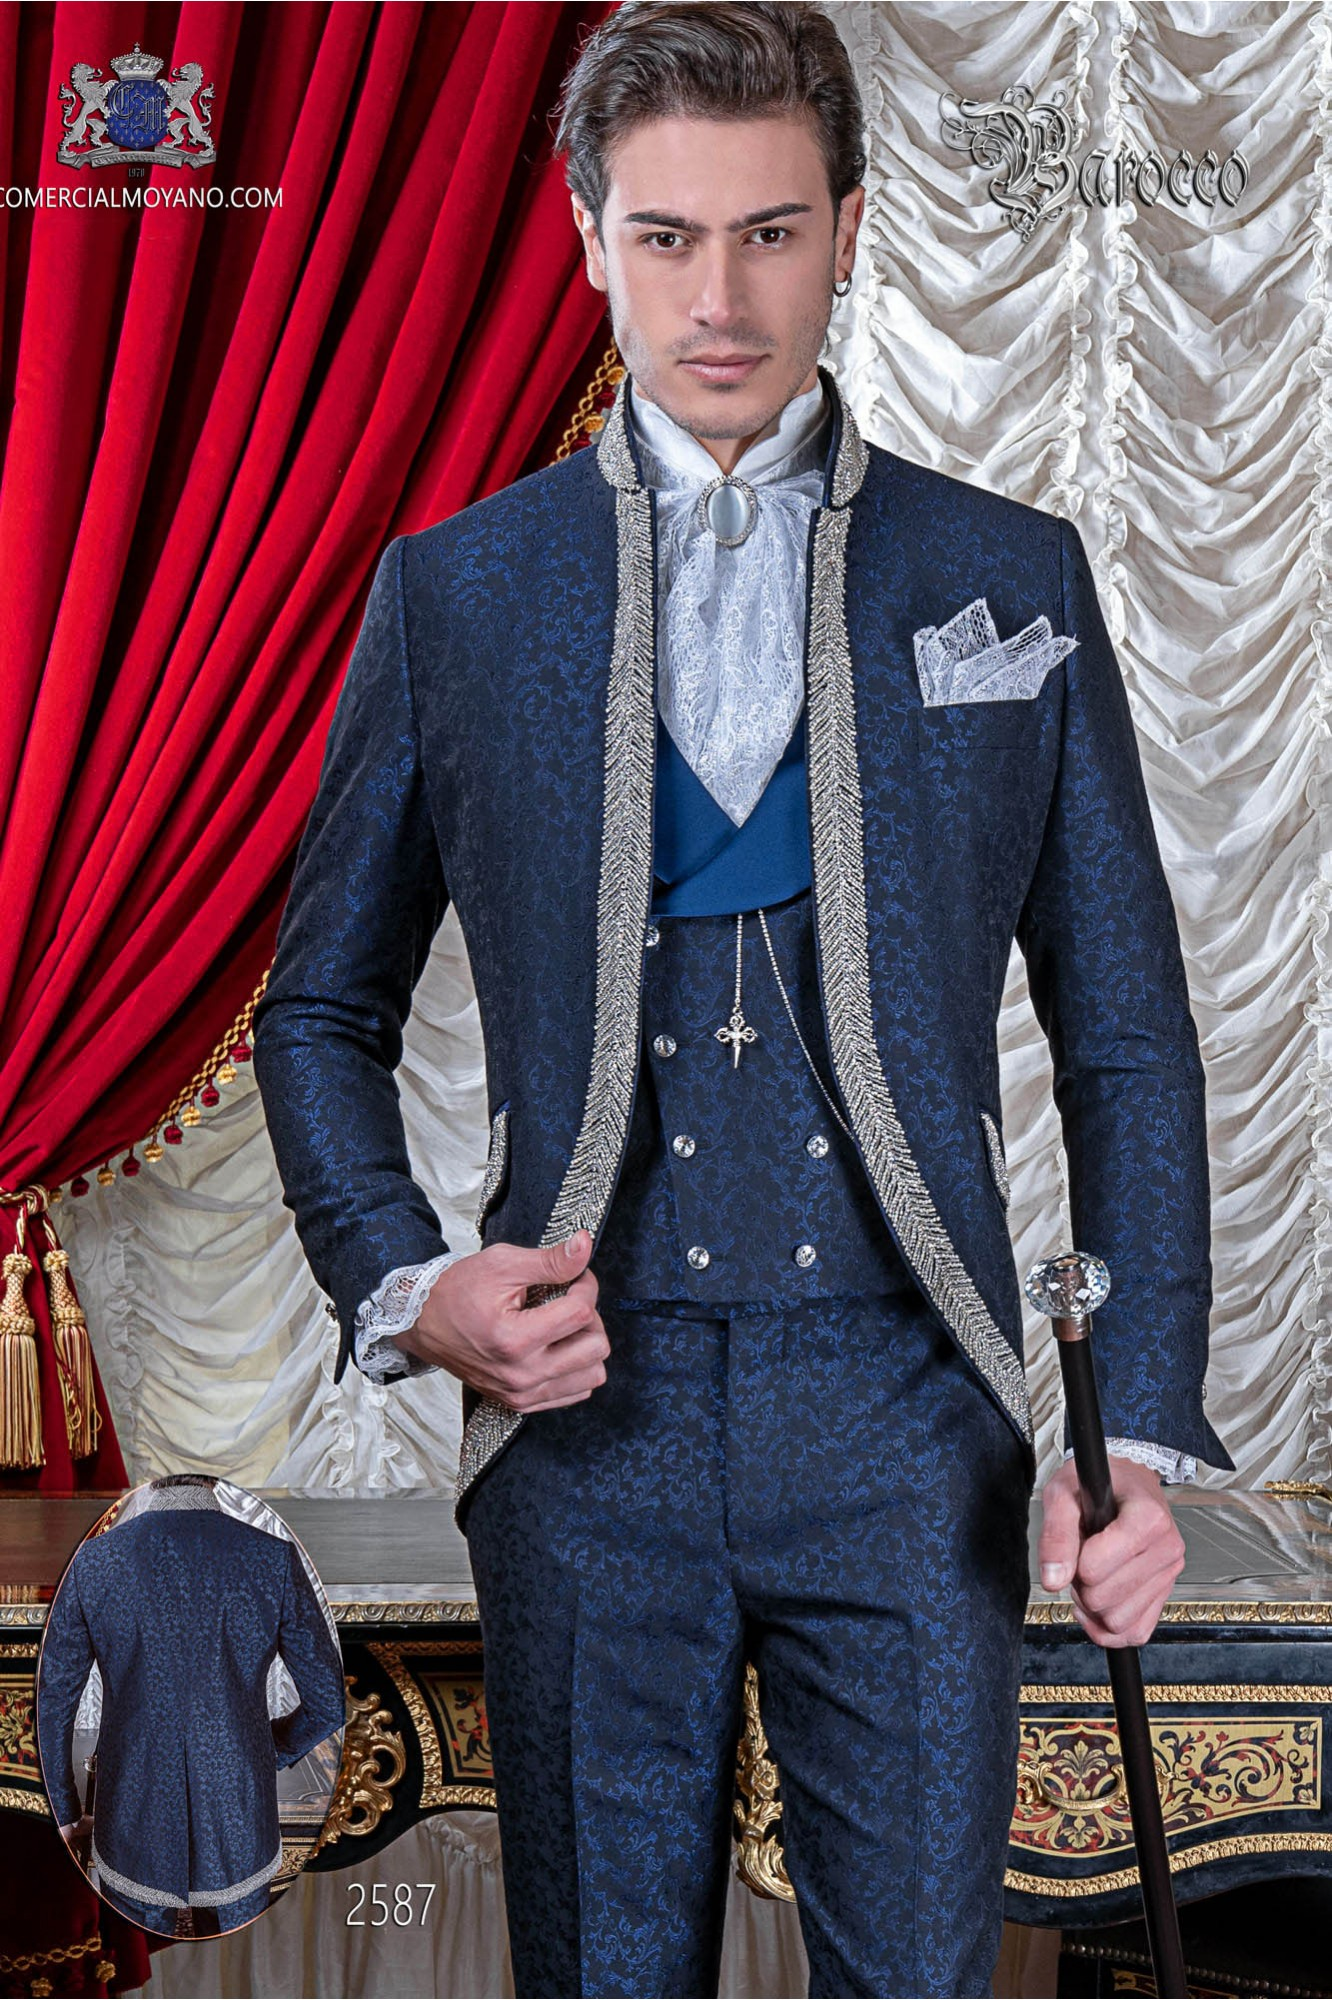 Baroque wedding suit, vintage mao frock coat in blue jacquard fabric with rhinestones